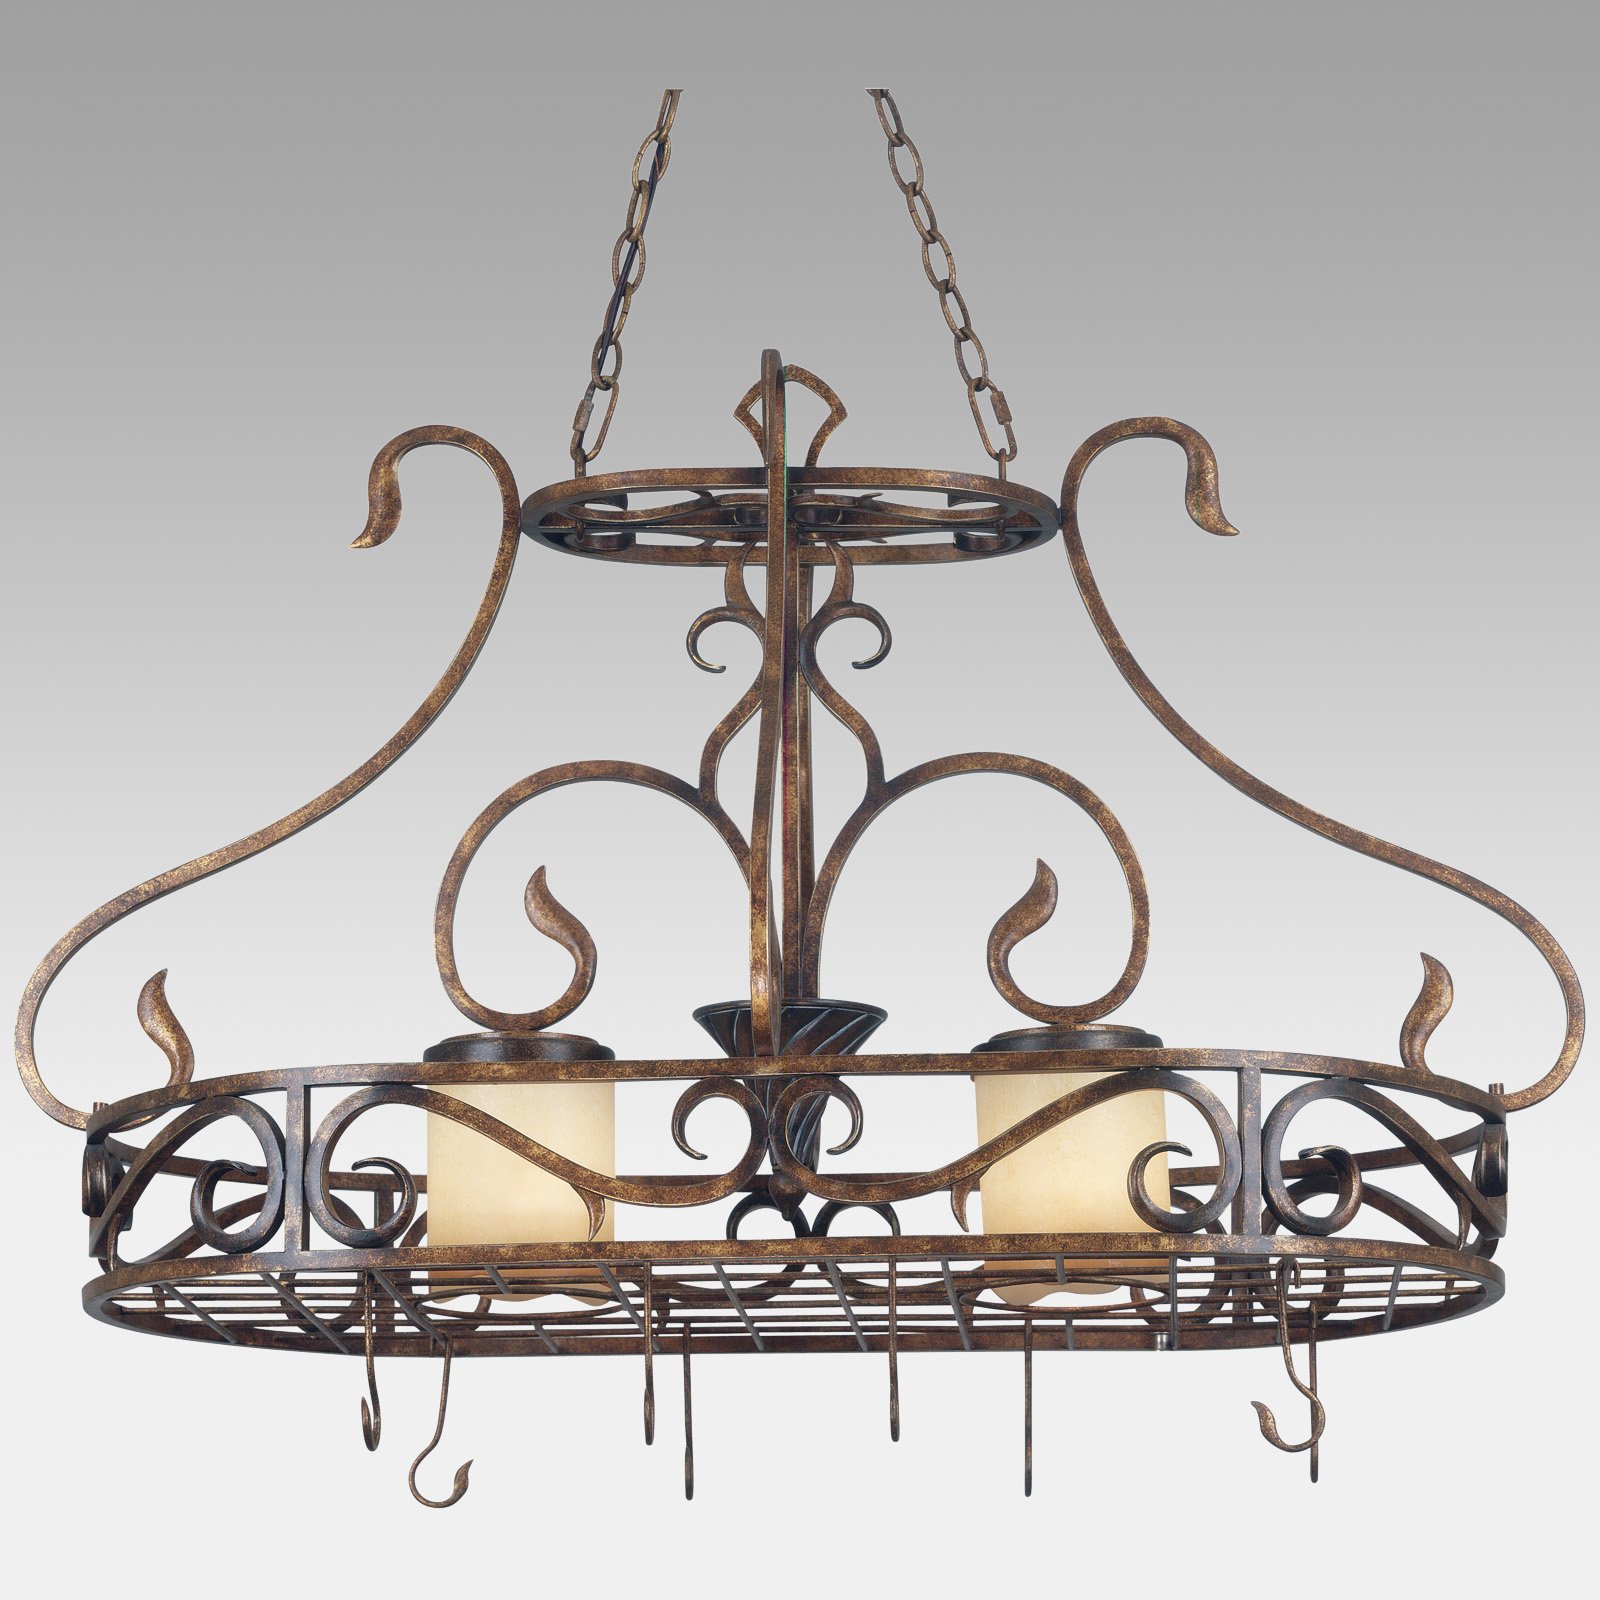 handcrafted metal decorative lights the of by pro racks in hanging ideas copper peddler furniture delightful with rack pot